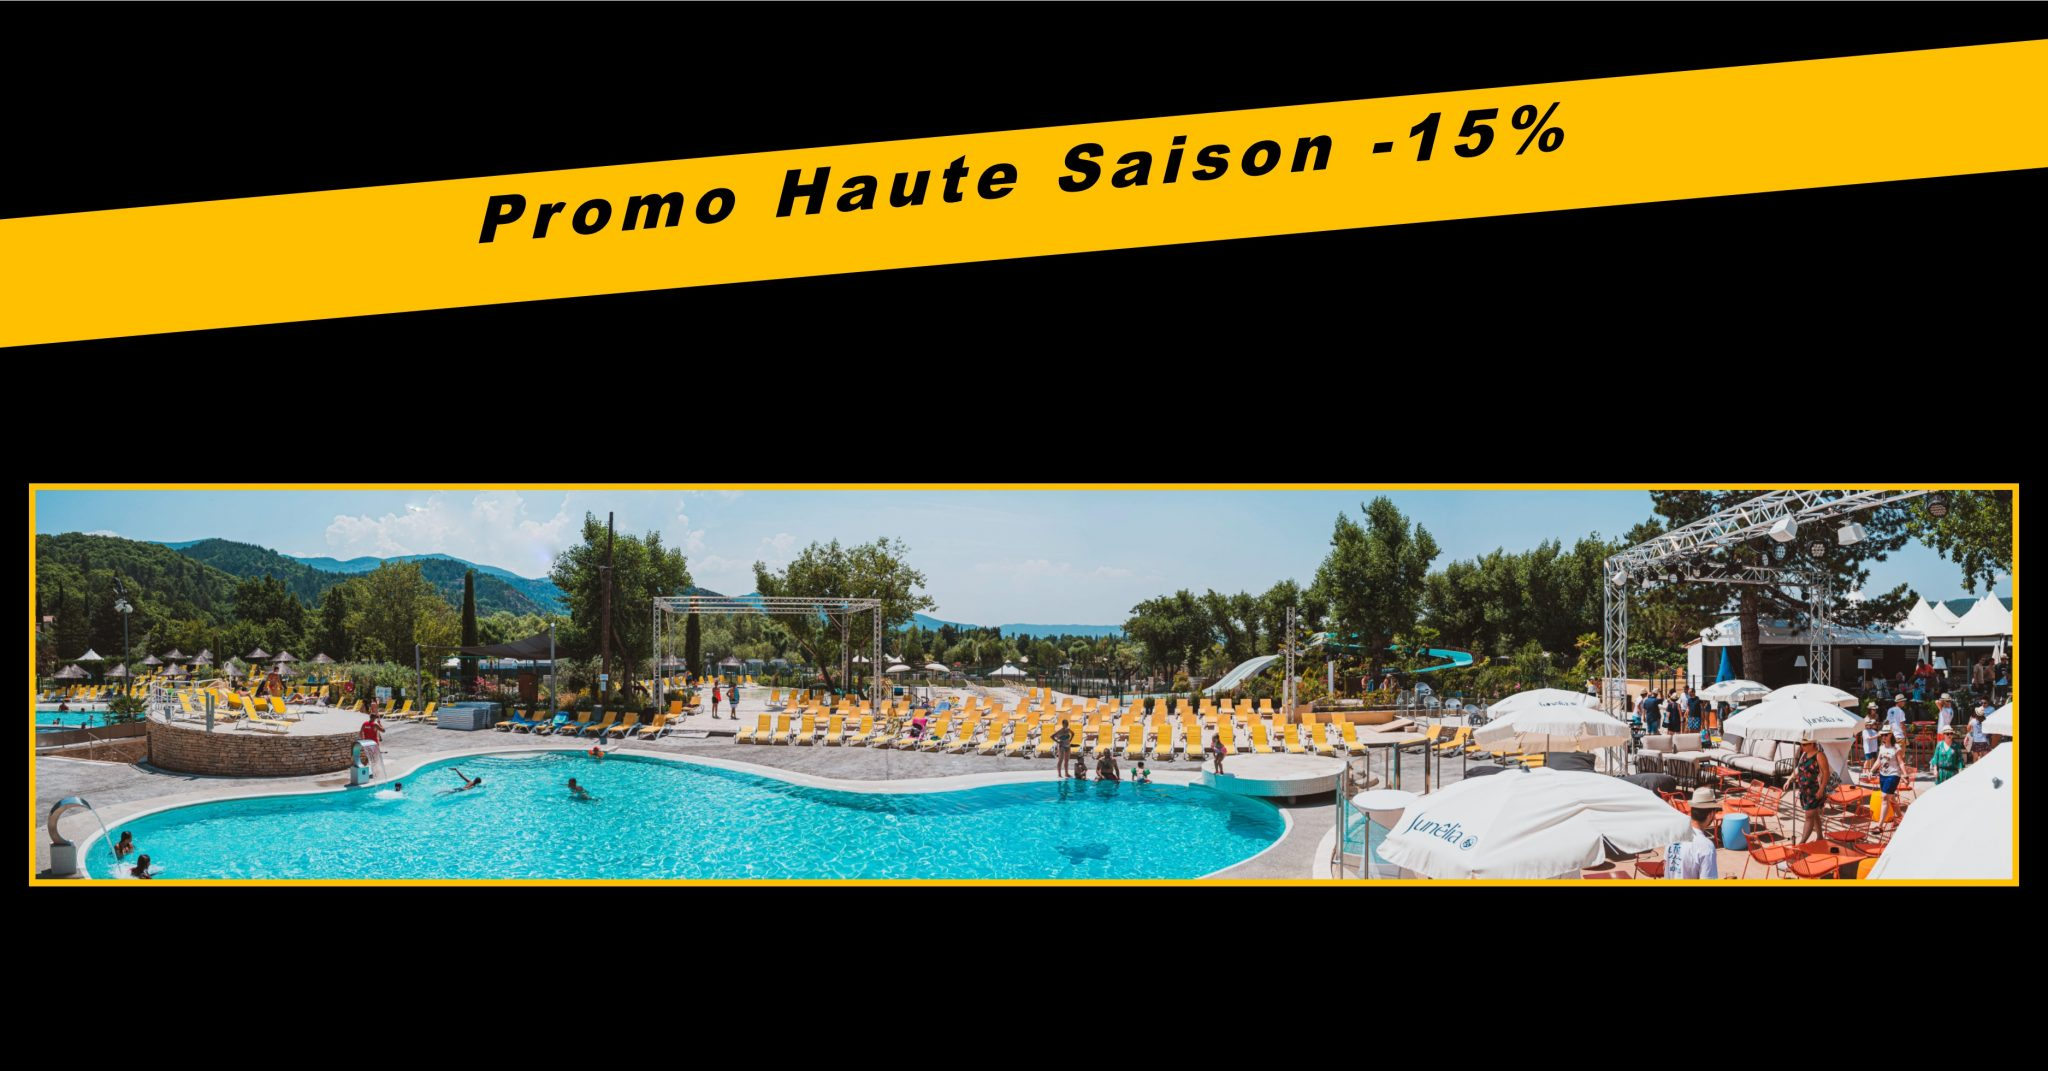 Special offer for the high season in August